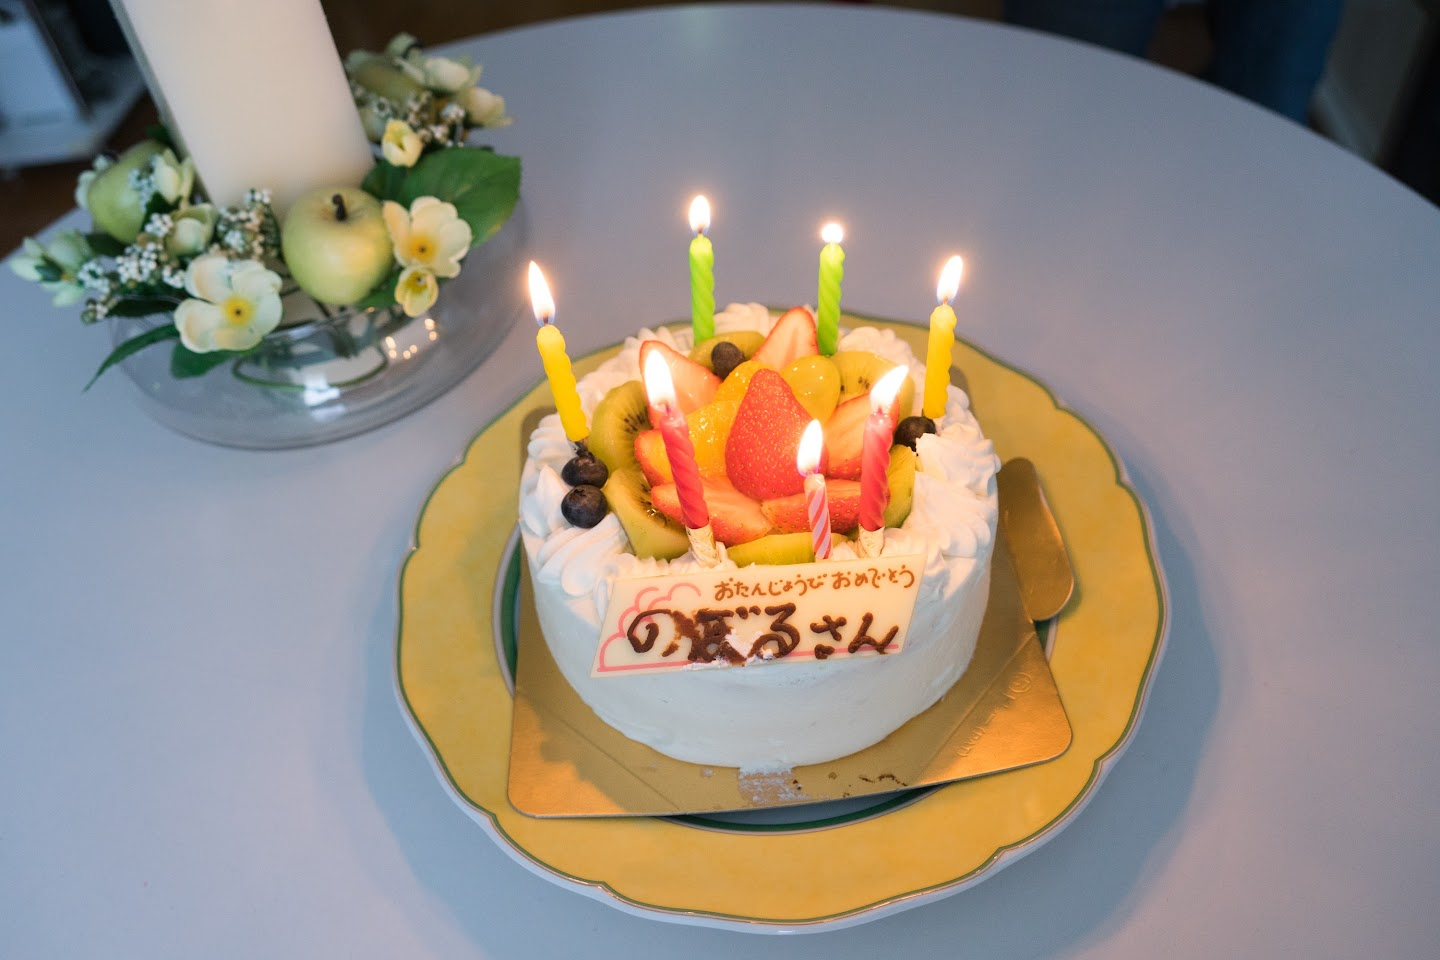 Happy Birthday to NOBORU!